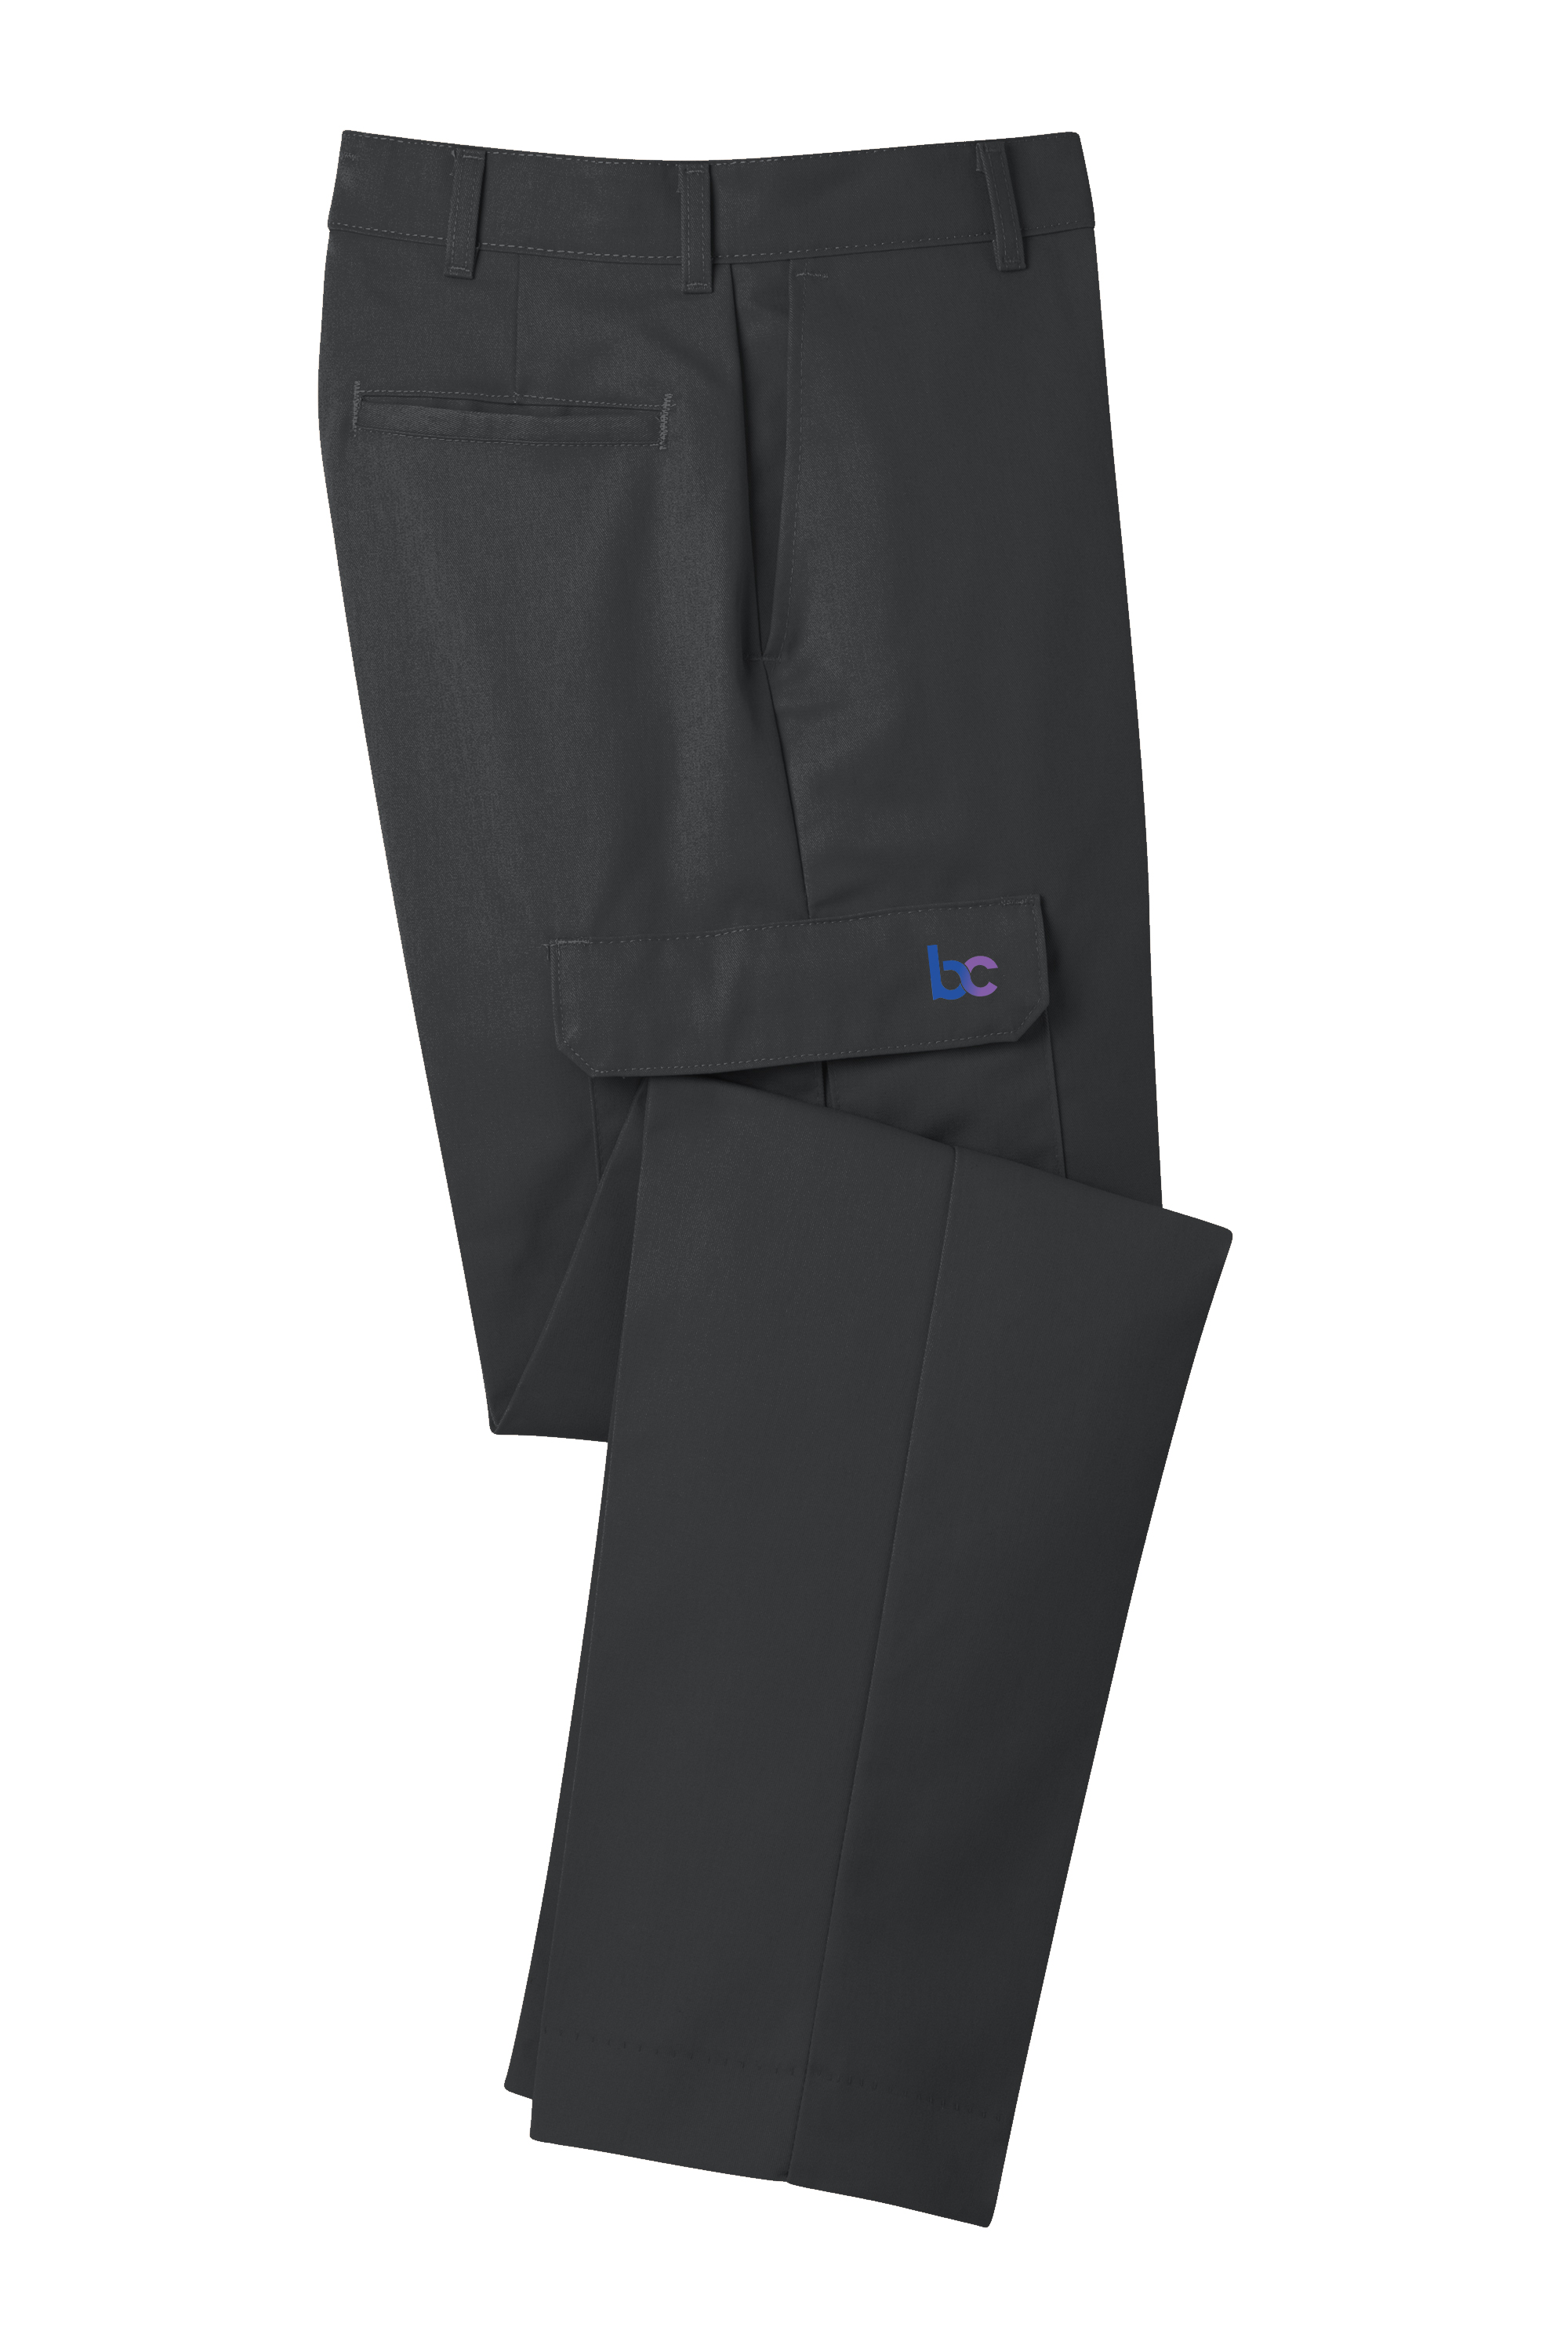 Red Kap® Industrial Cargo Pant.-